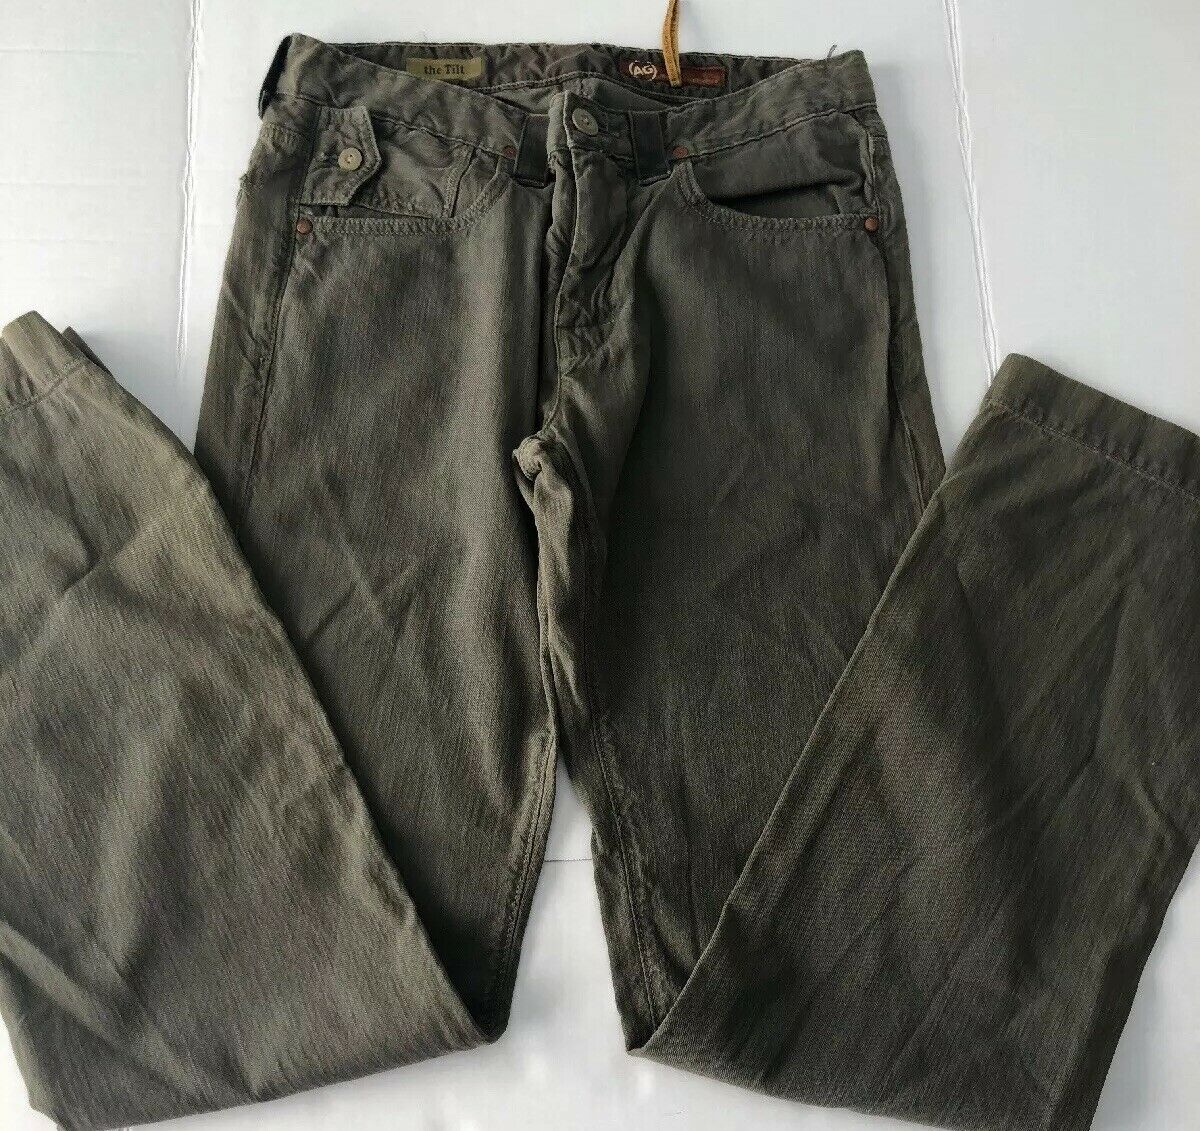 Adriano goldschmied Pants The Tilt Green Mens Sz 31 R NWOT